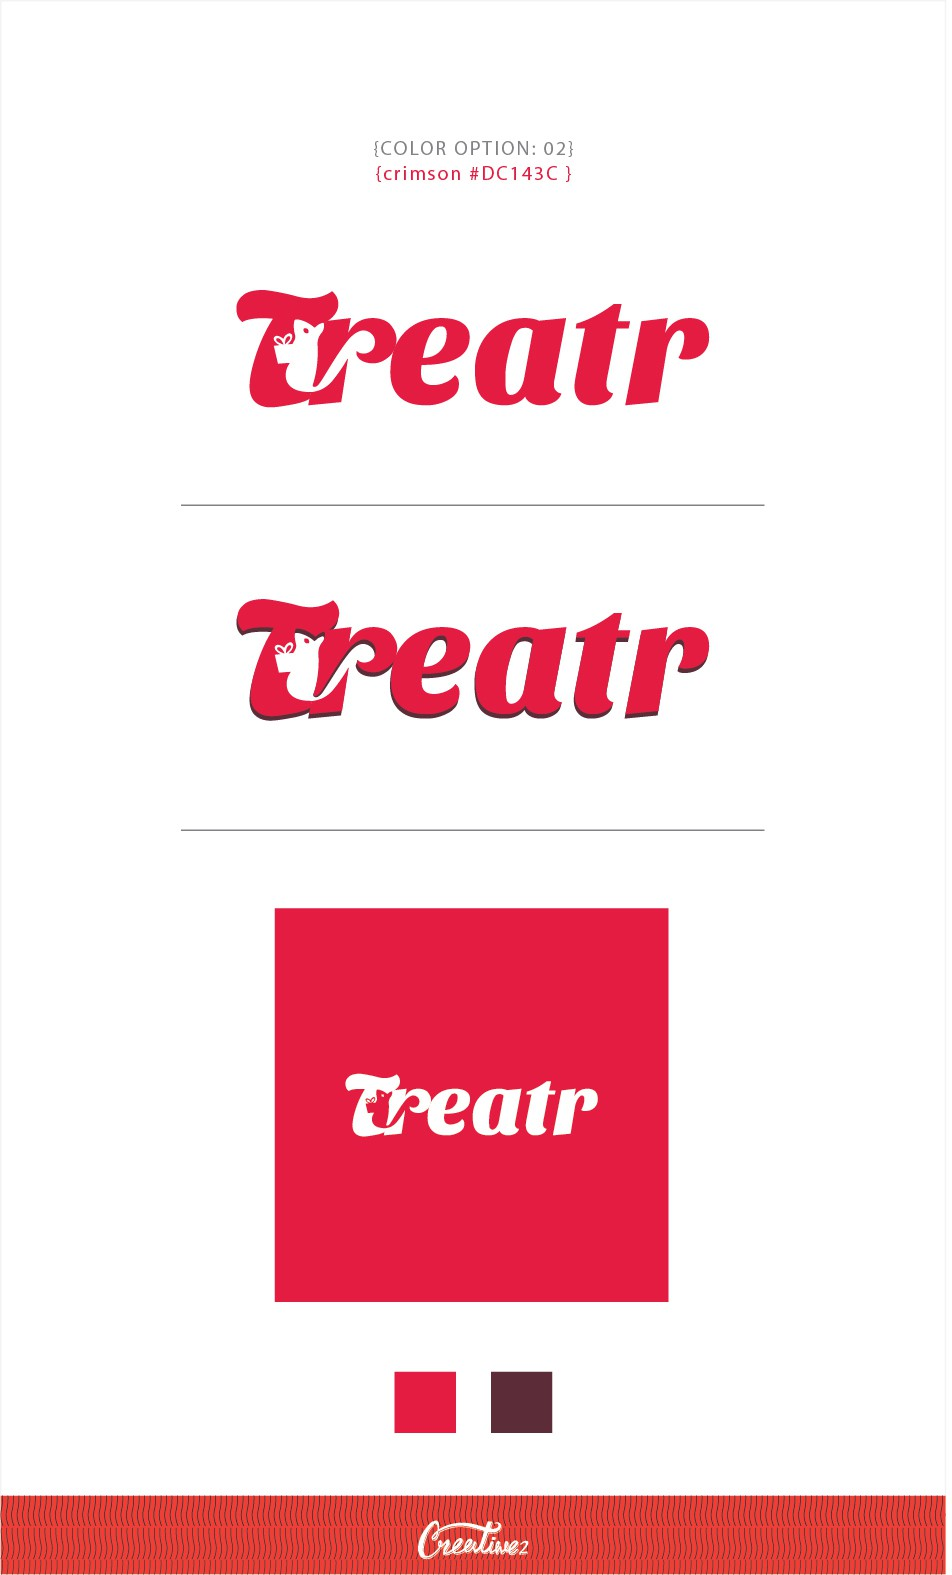 Create a playful and happy brand identity for Treatr